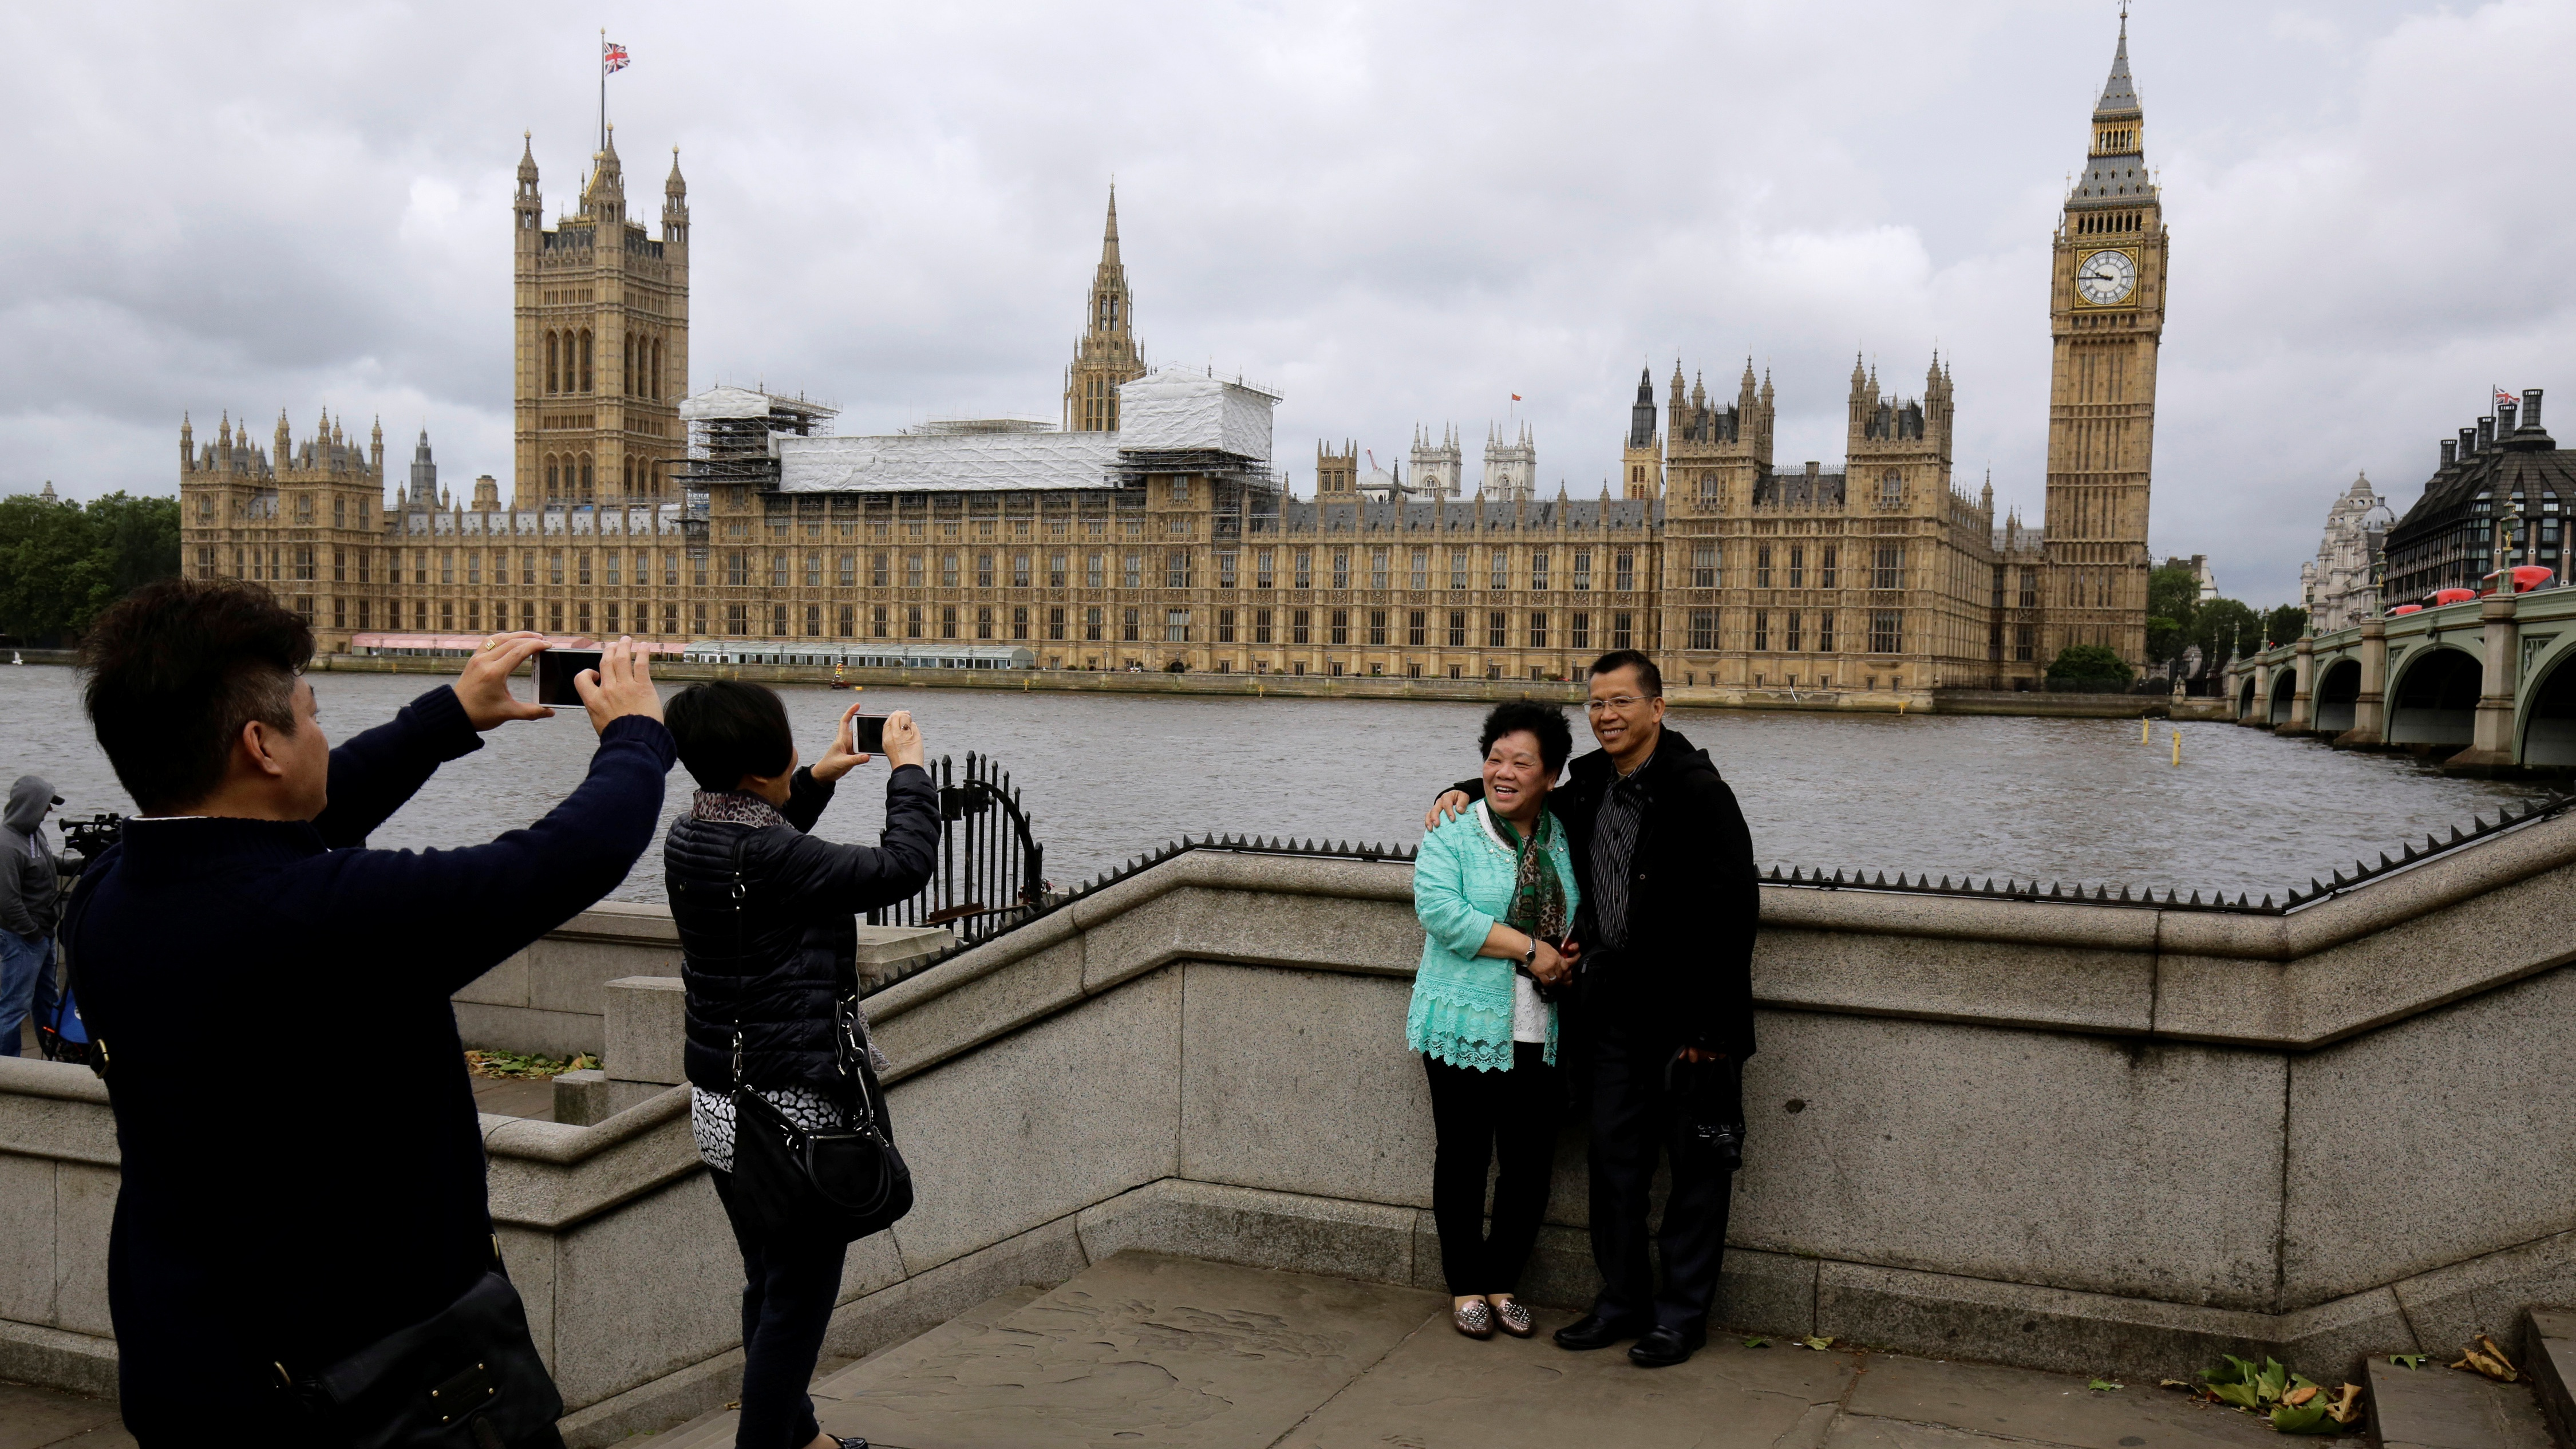 Chinese tourists take pictures near the Big Ben clock tower in London, Britain June 29, 2016. REUTERS/Kevin Coombs